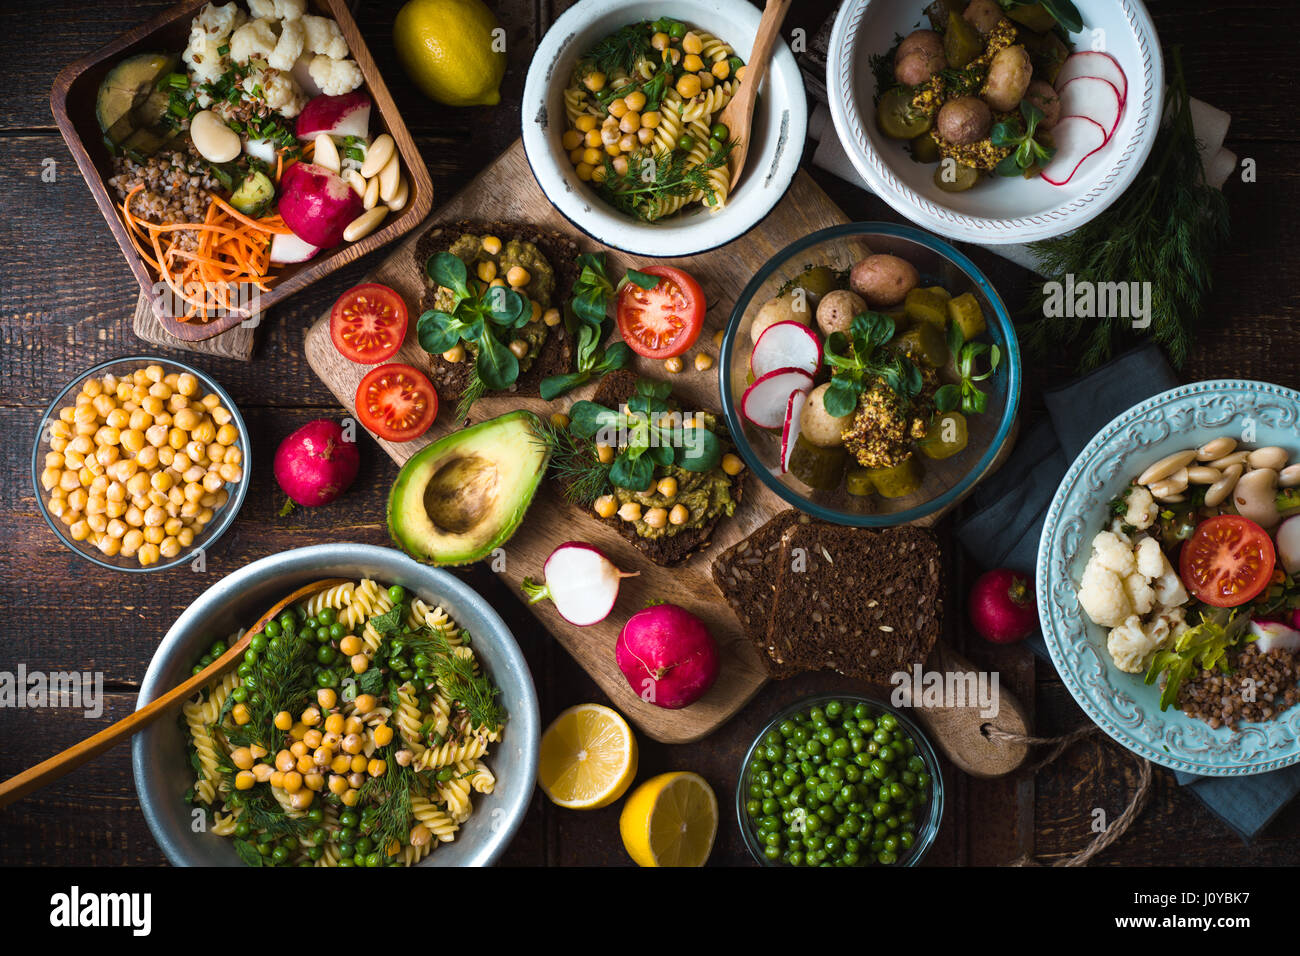 Different salad and snack on the wooden table top view - Stock Image